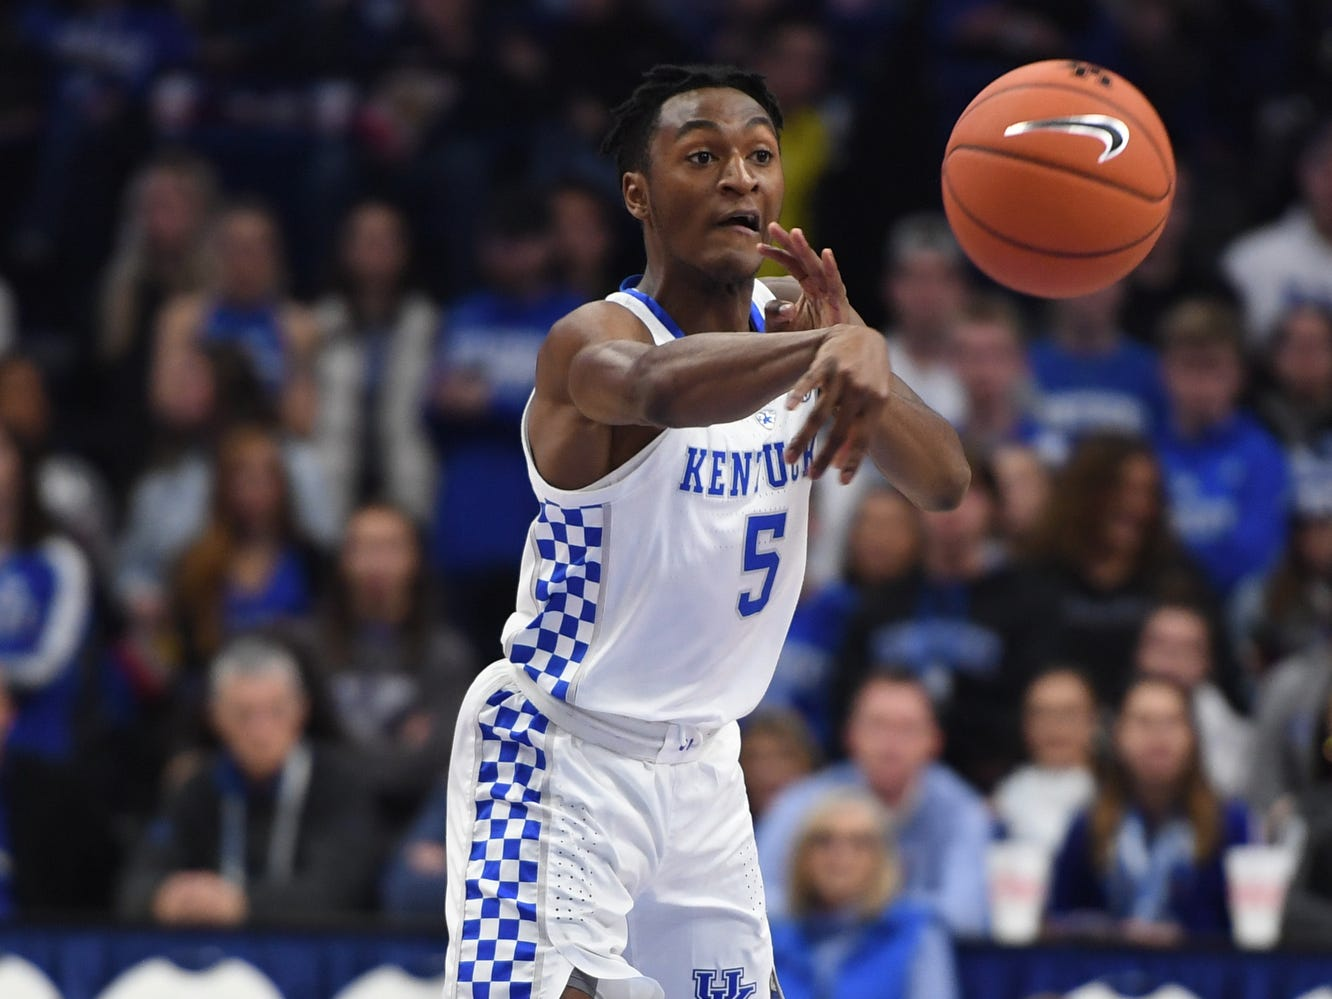 Immanuel Quickly passes the ball during the University of Kentucky  basketball game against Indiana University of Pennsylvania at Rupp Arena on Friday, Nov. 2, 2018.